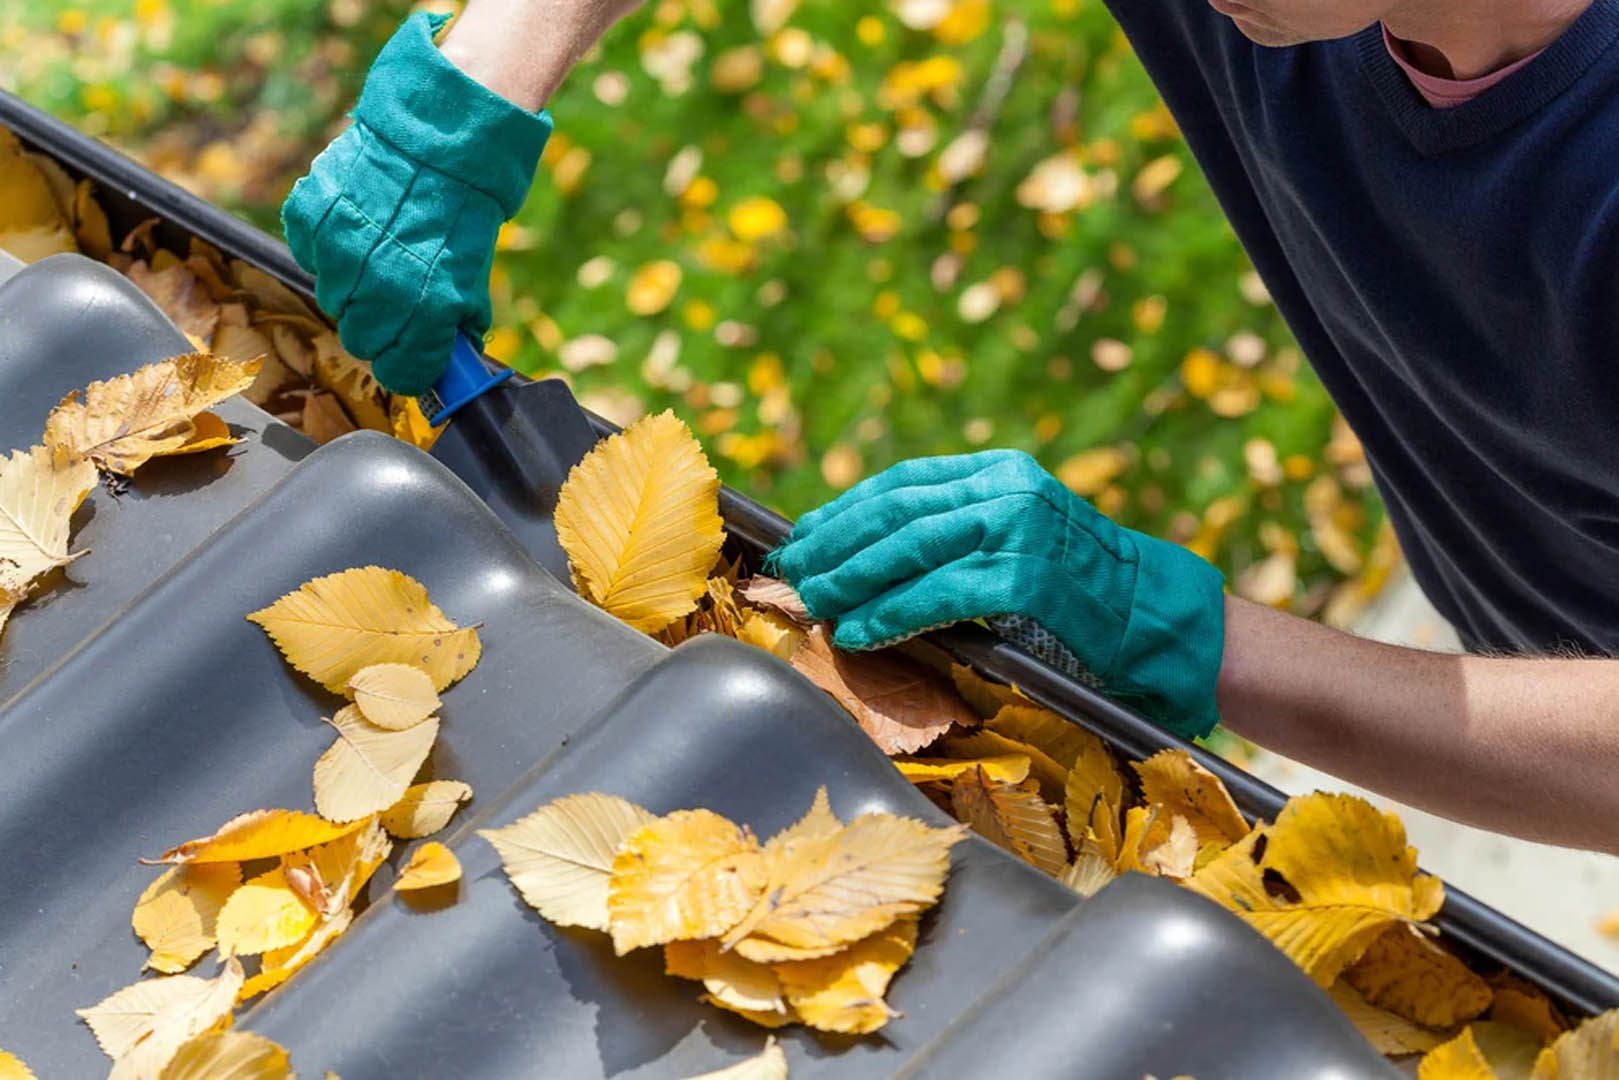 Man-cleaning-the-gutter-from-autumn-leaves-1